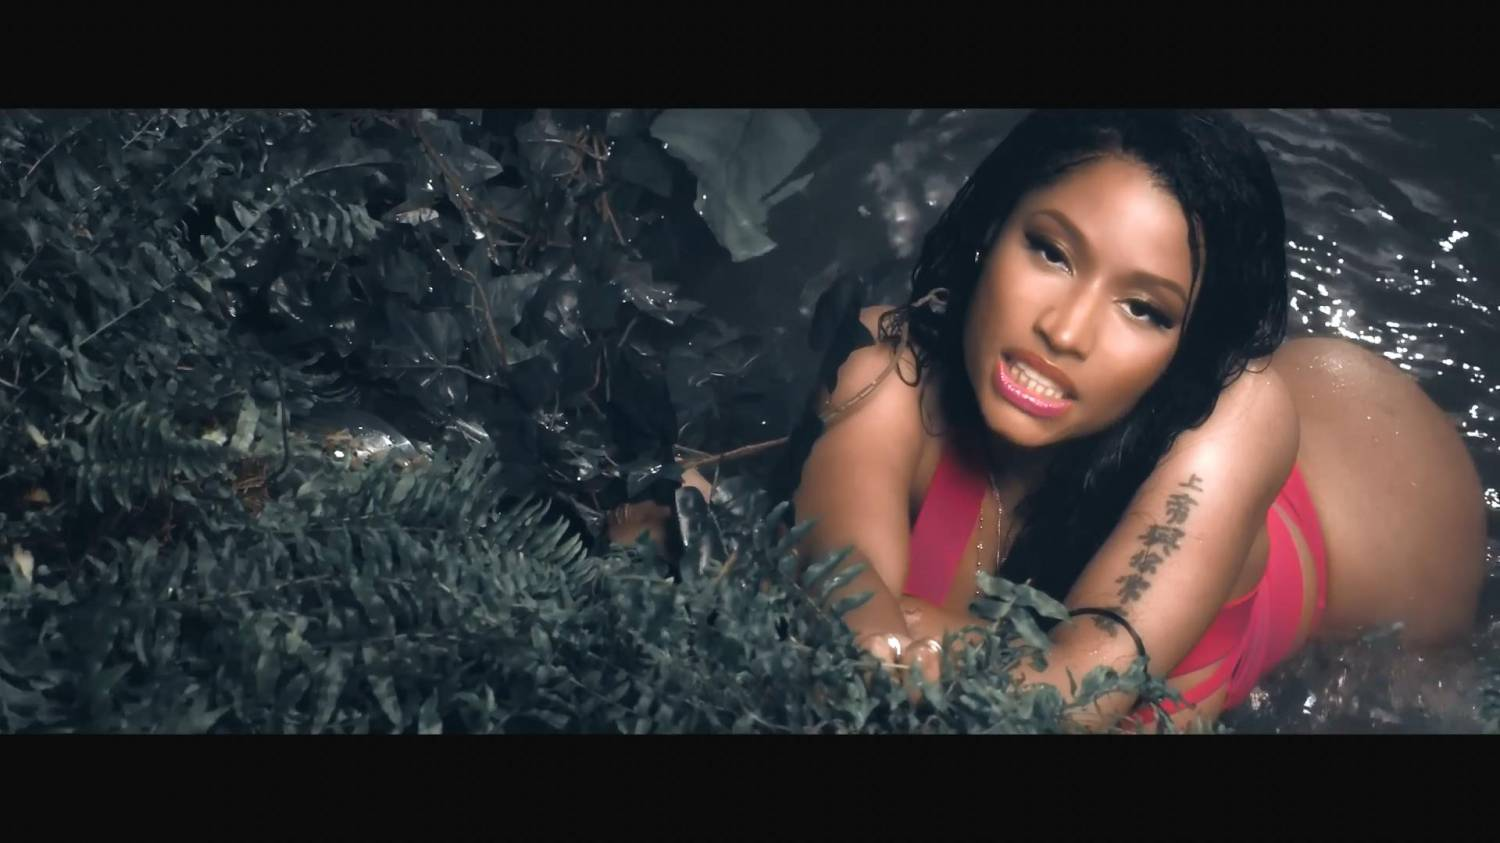 Nicki Minaj - Anaconda (2014) HD 1080p